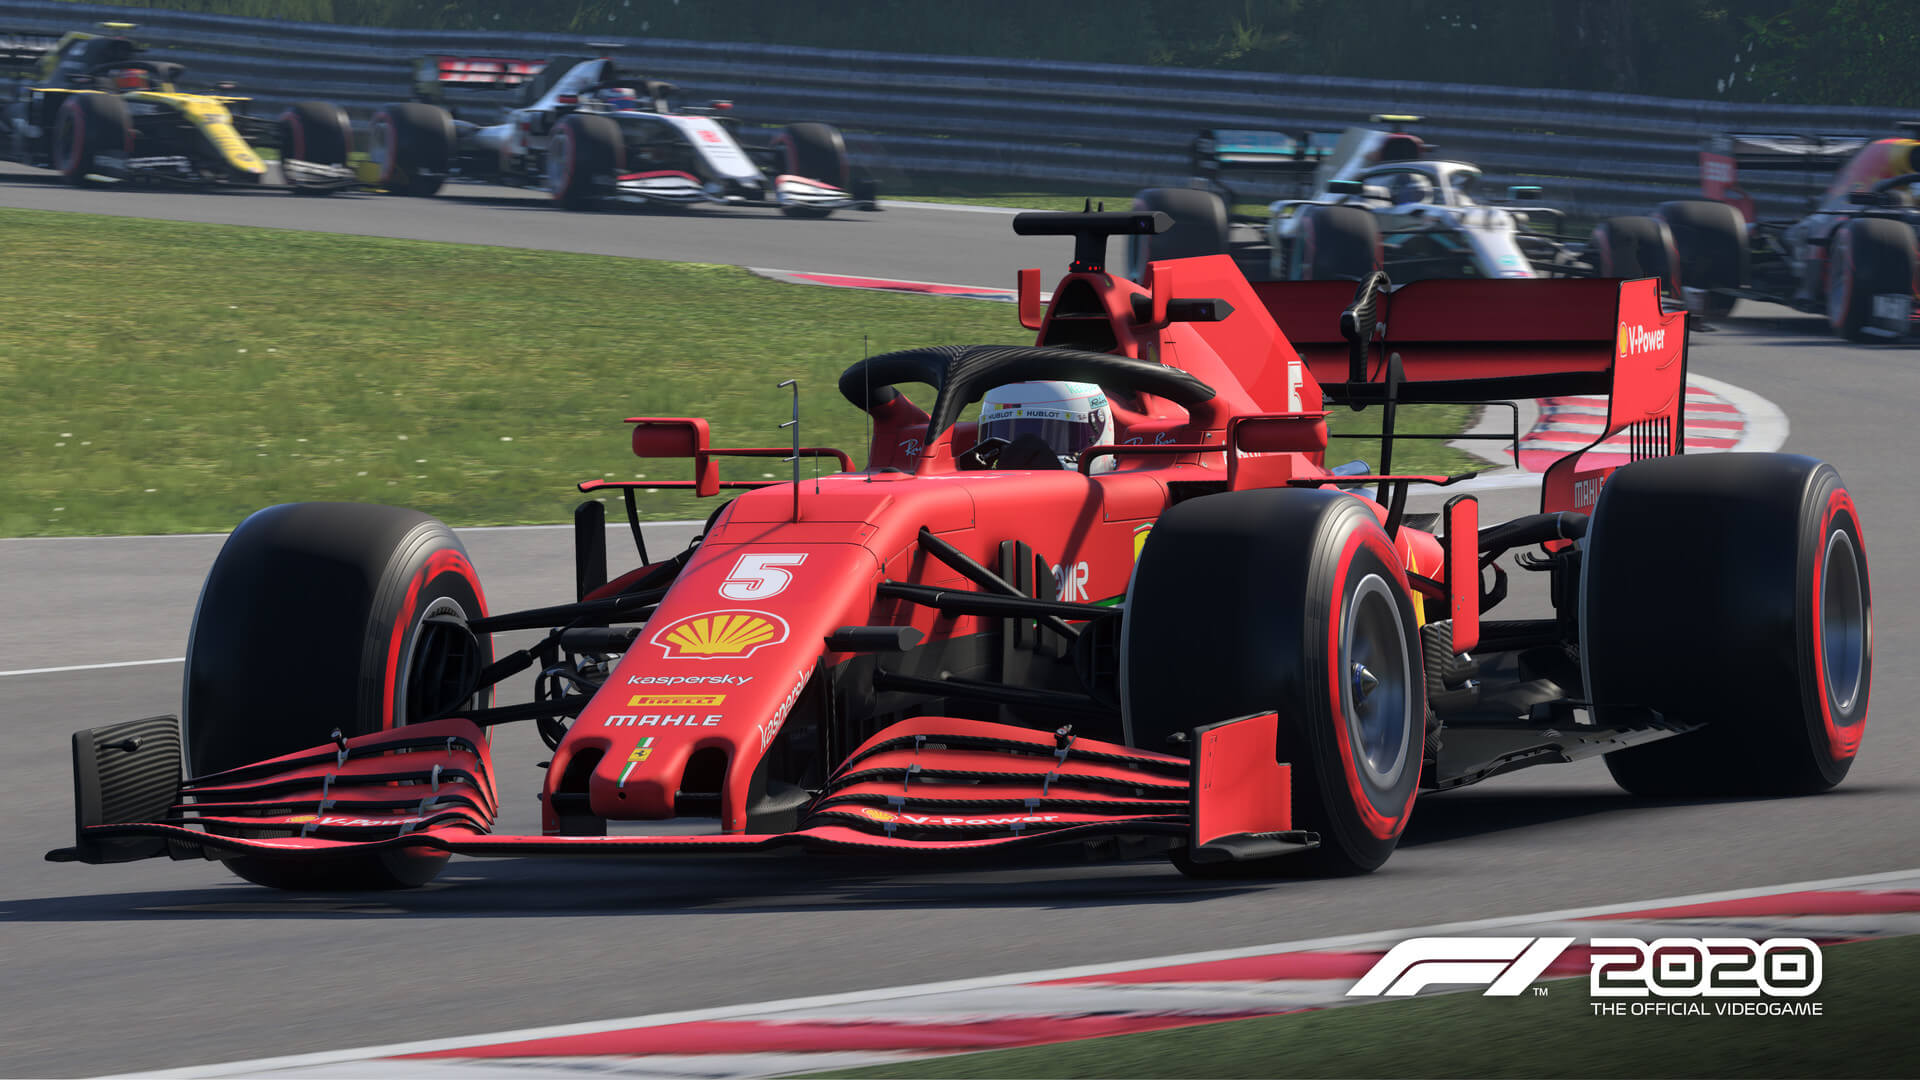 F1 2020 Review: Racing At Its Best